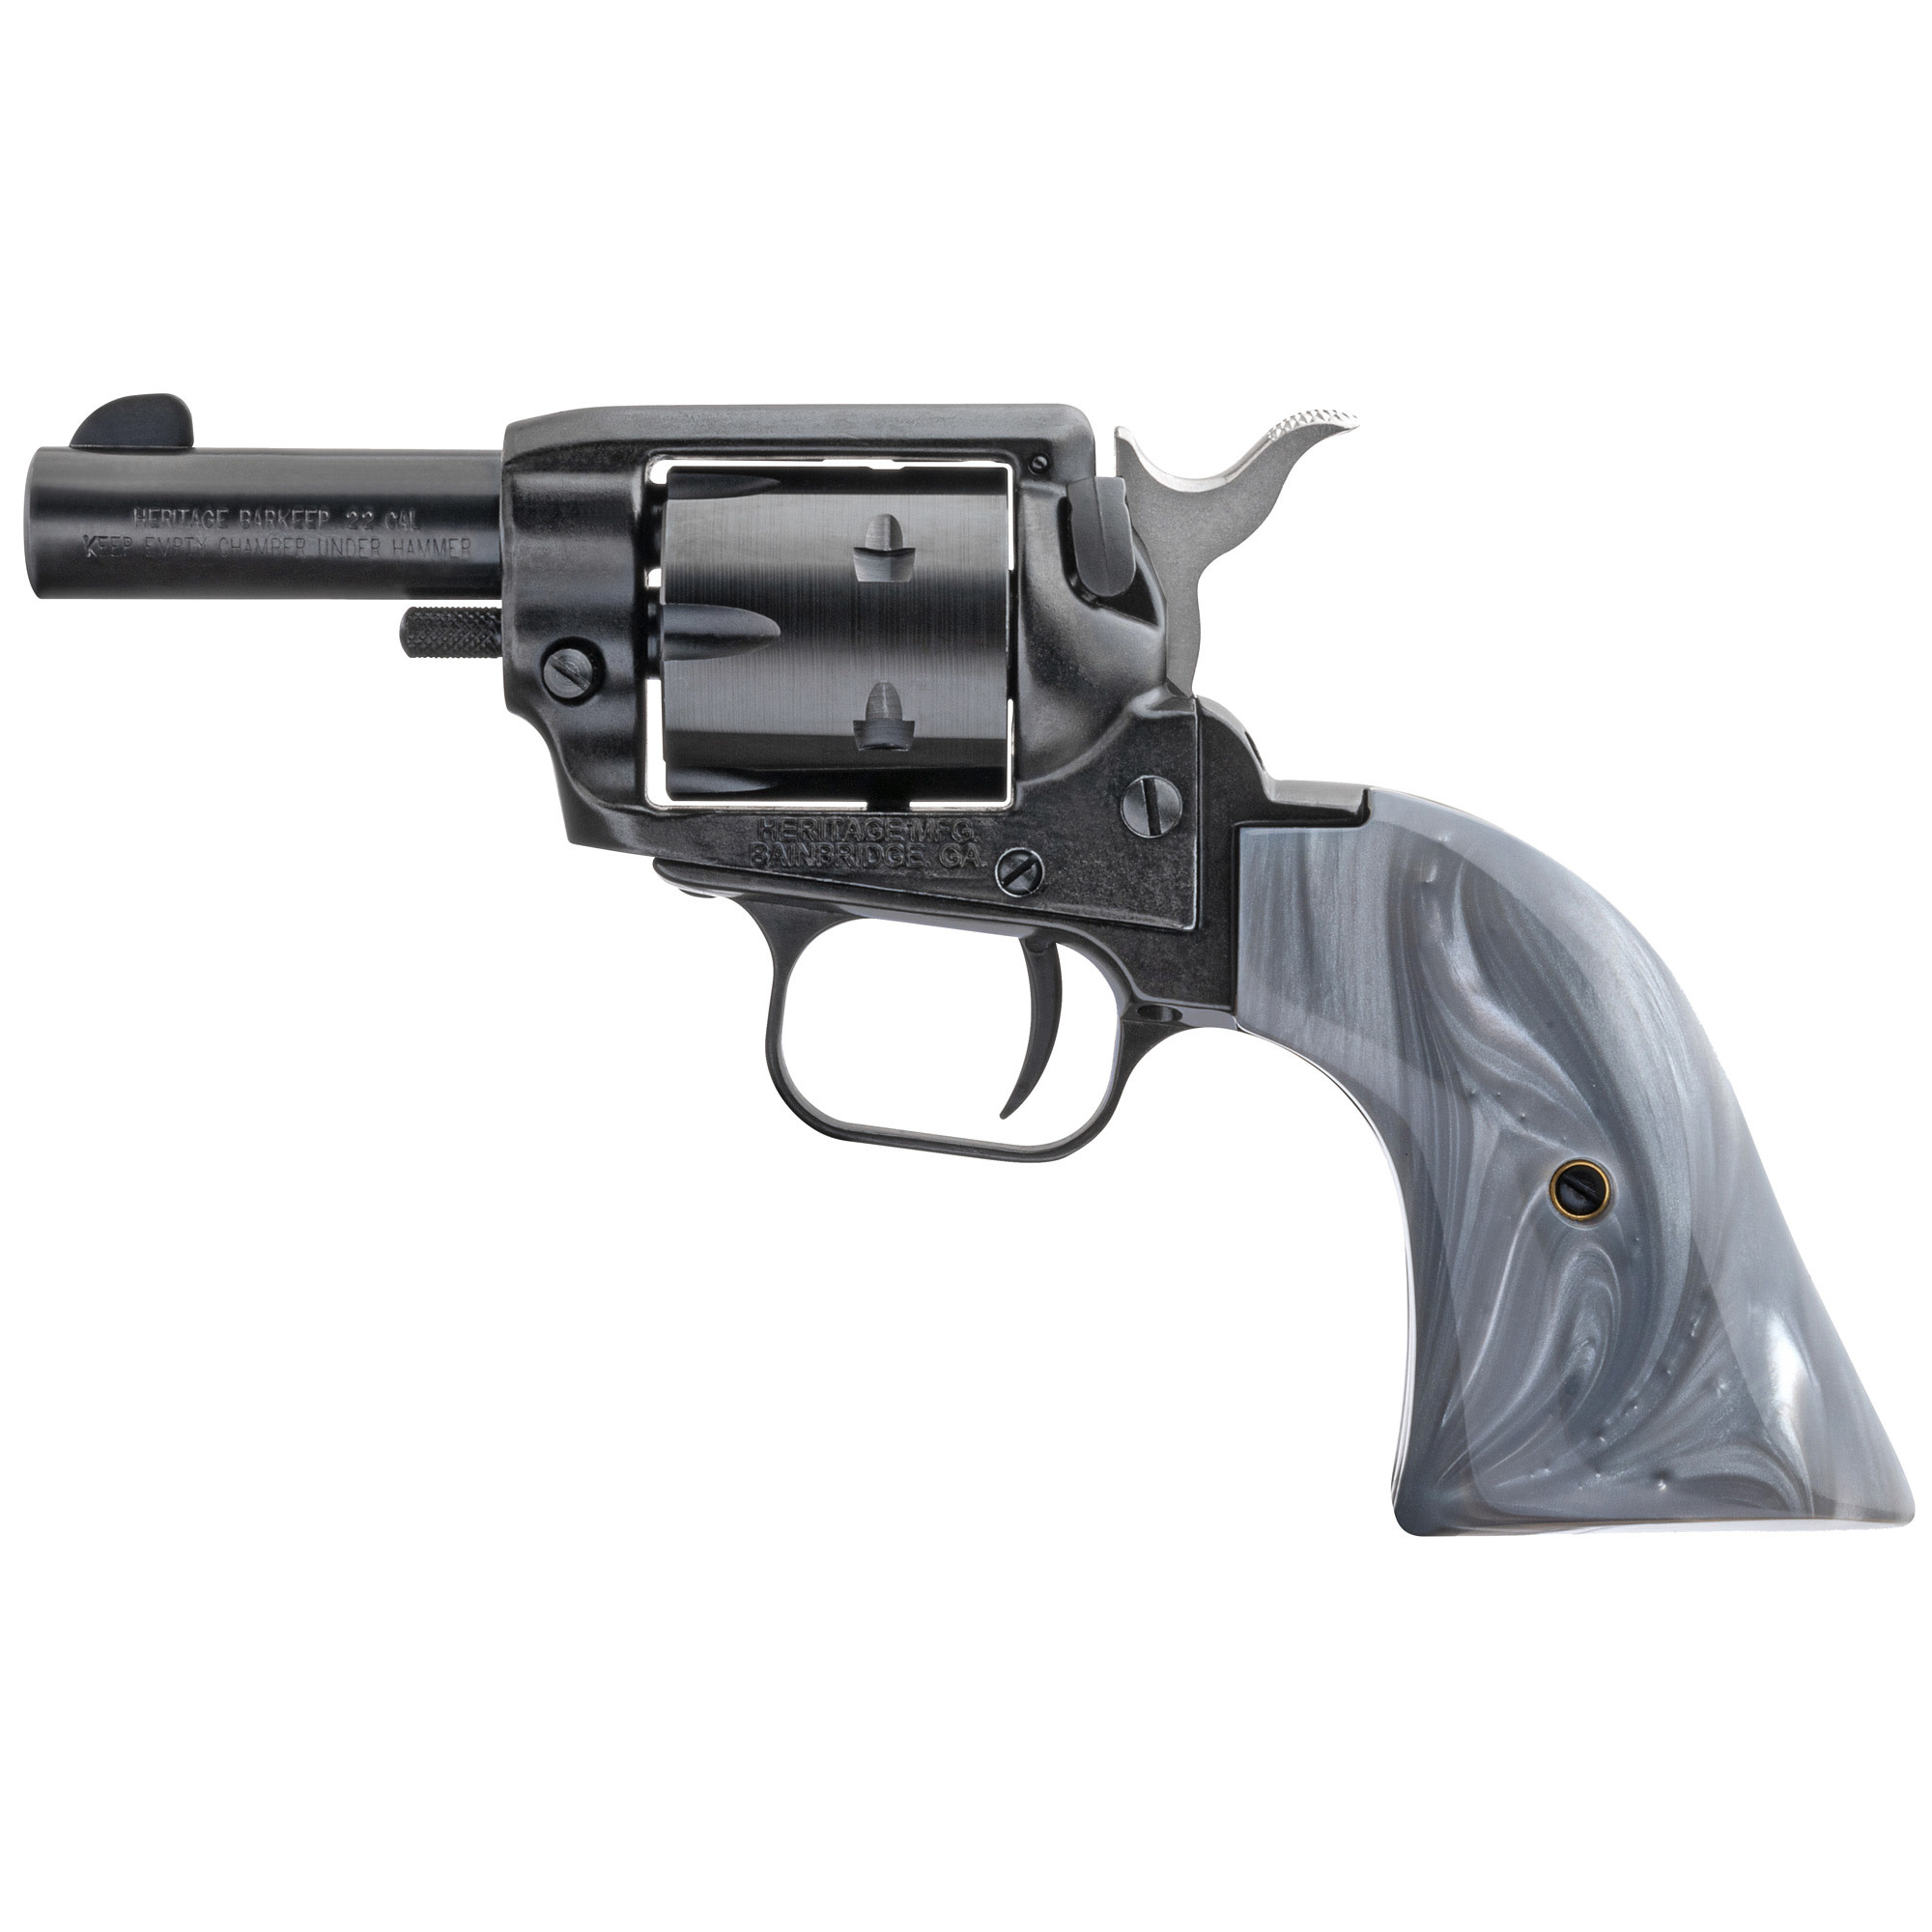 Heritage RoughRider BarKeep, 22lr, 2'' barrel, 6 rounds, Gray Pearl Grip